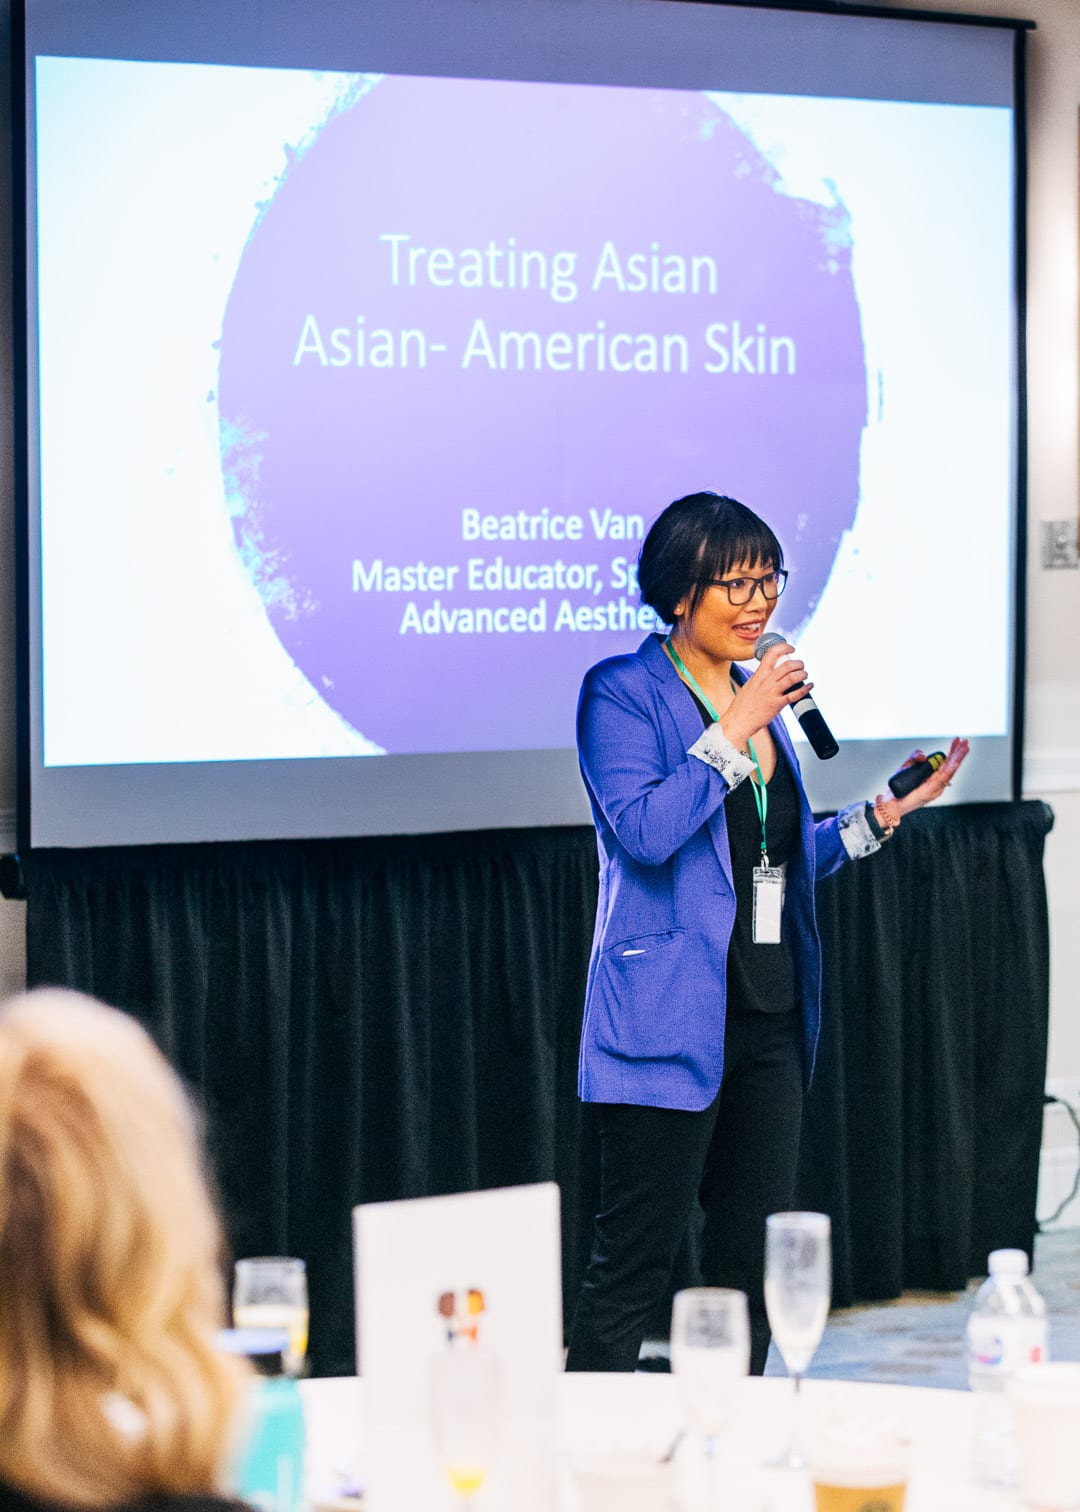 Fearless Beauties Event Photo treating Asian American Skin